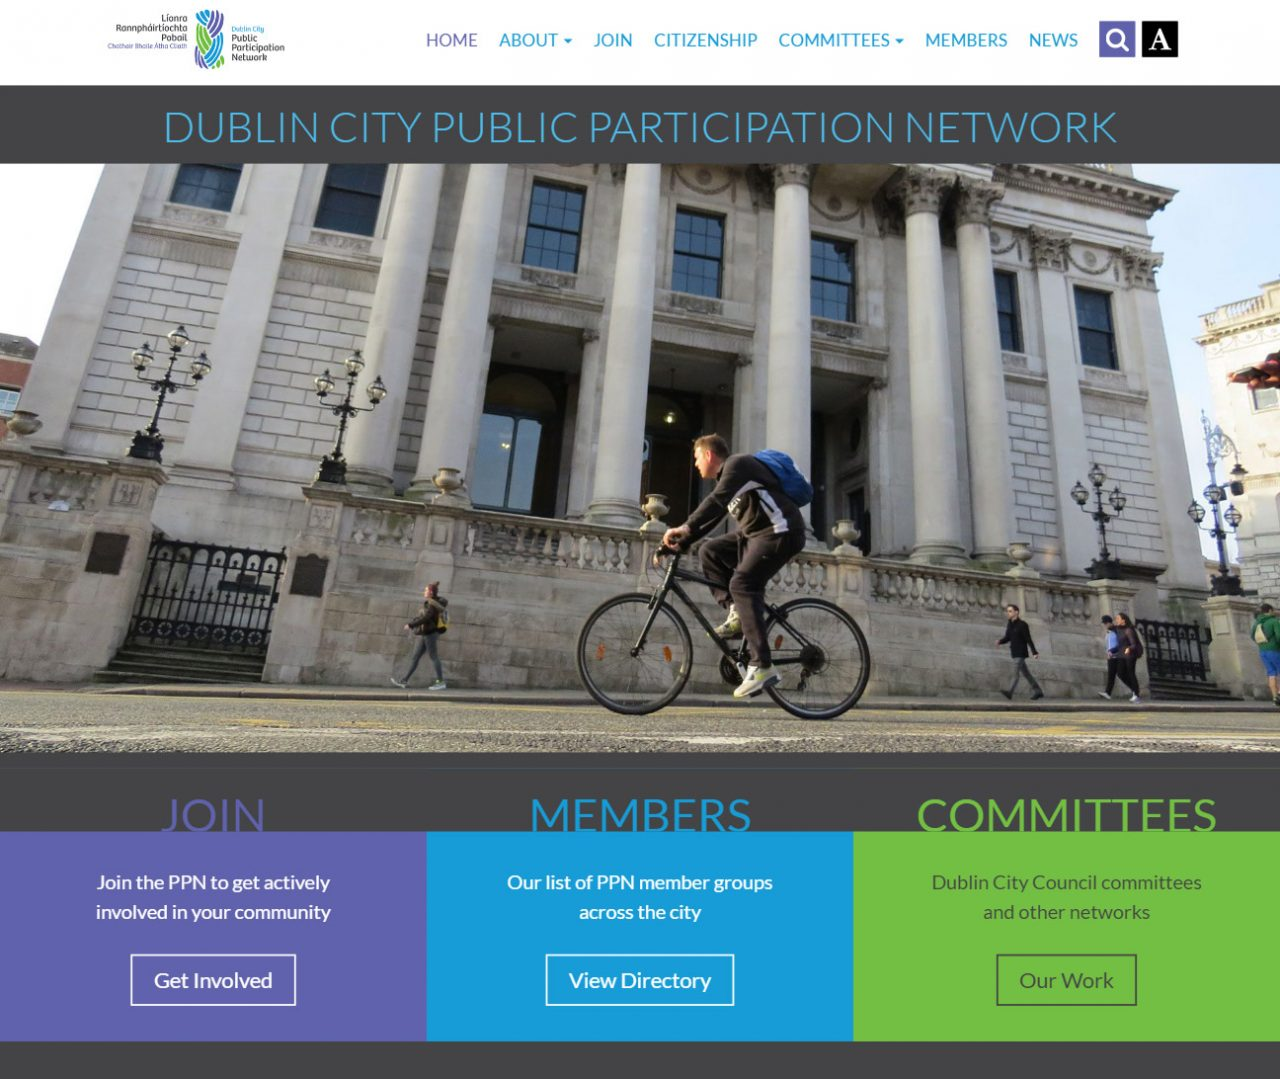 Dublin City Public Participation Network - Home